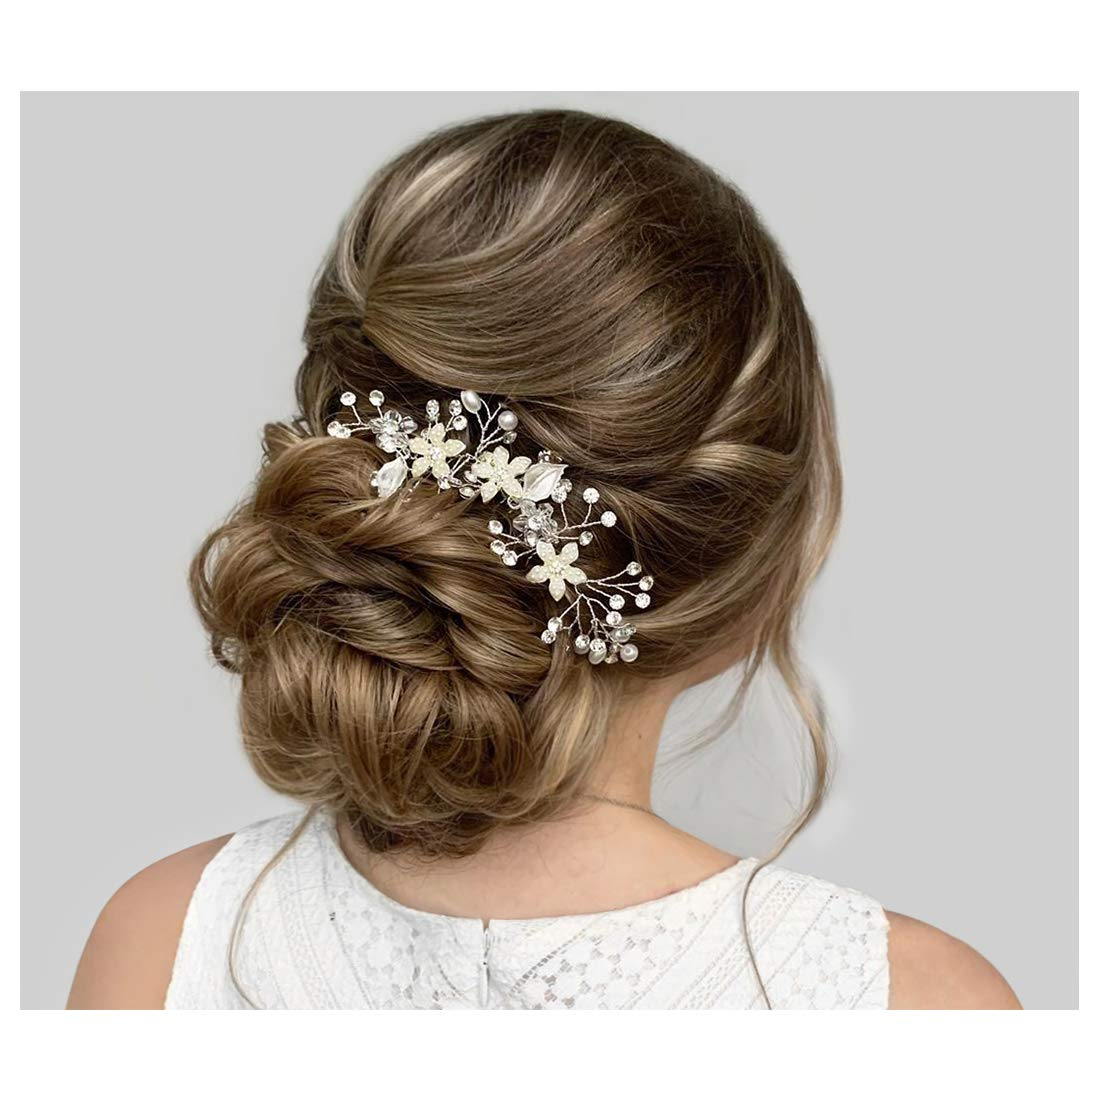 Amazon Com Sweetv Wedding Hair Comb Silver Pearl Flower Bridal Clip Rhinestone Hair Accessories For Bride Women Beauty